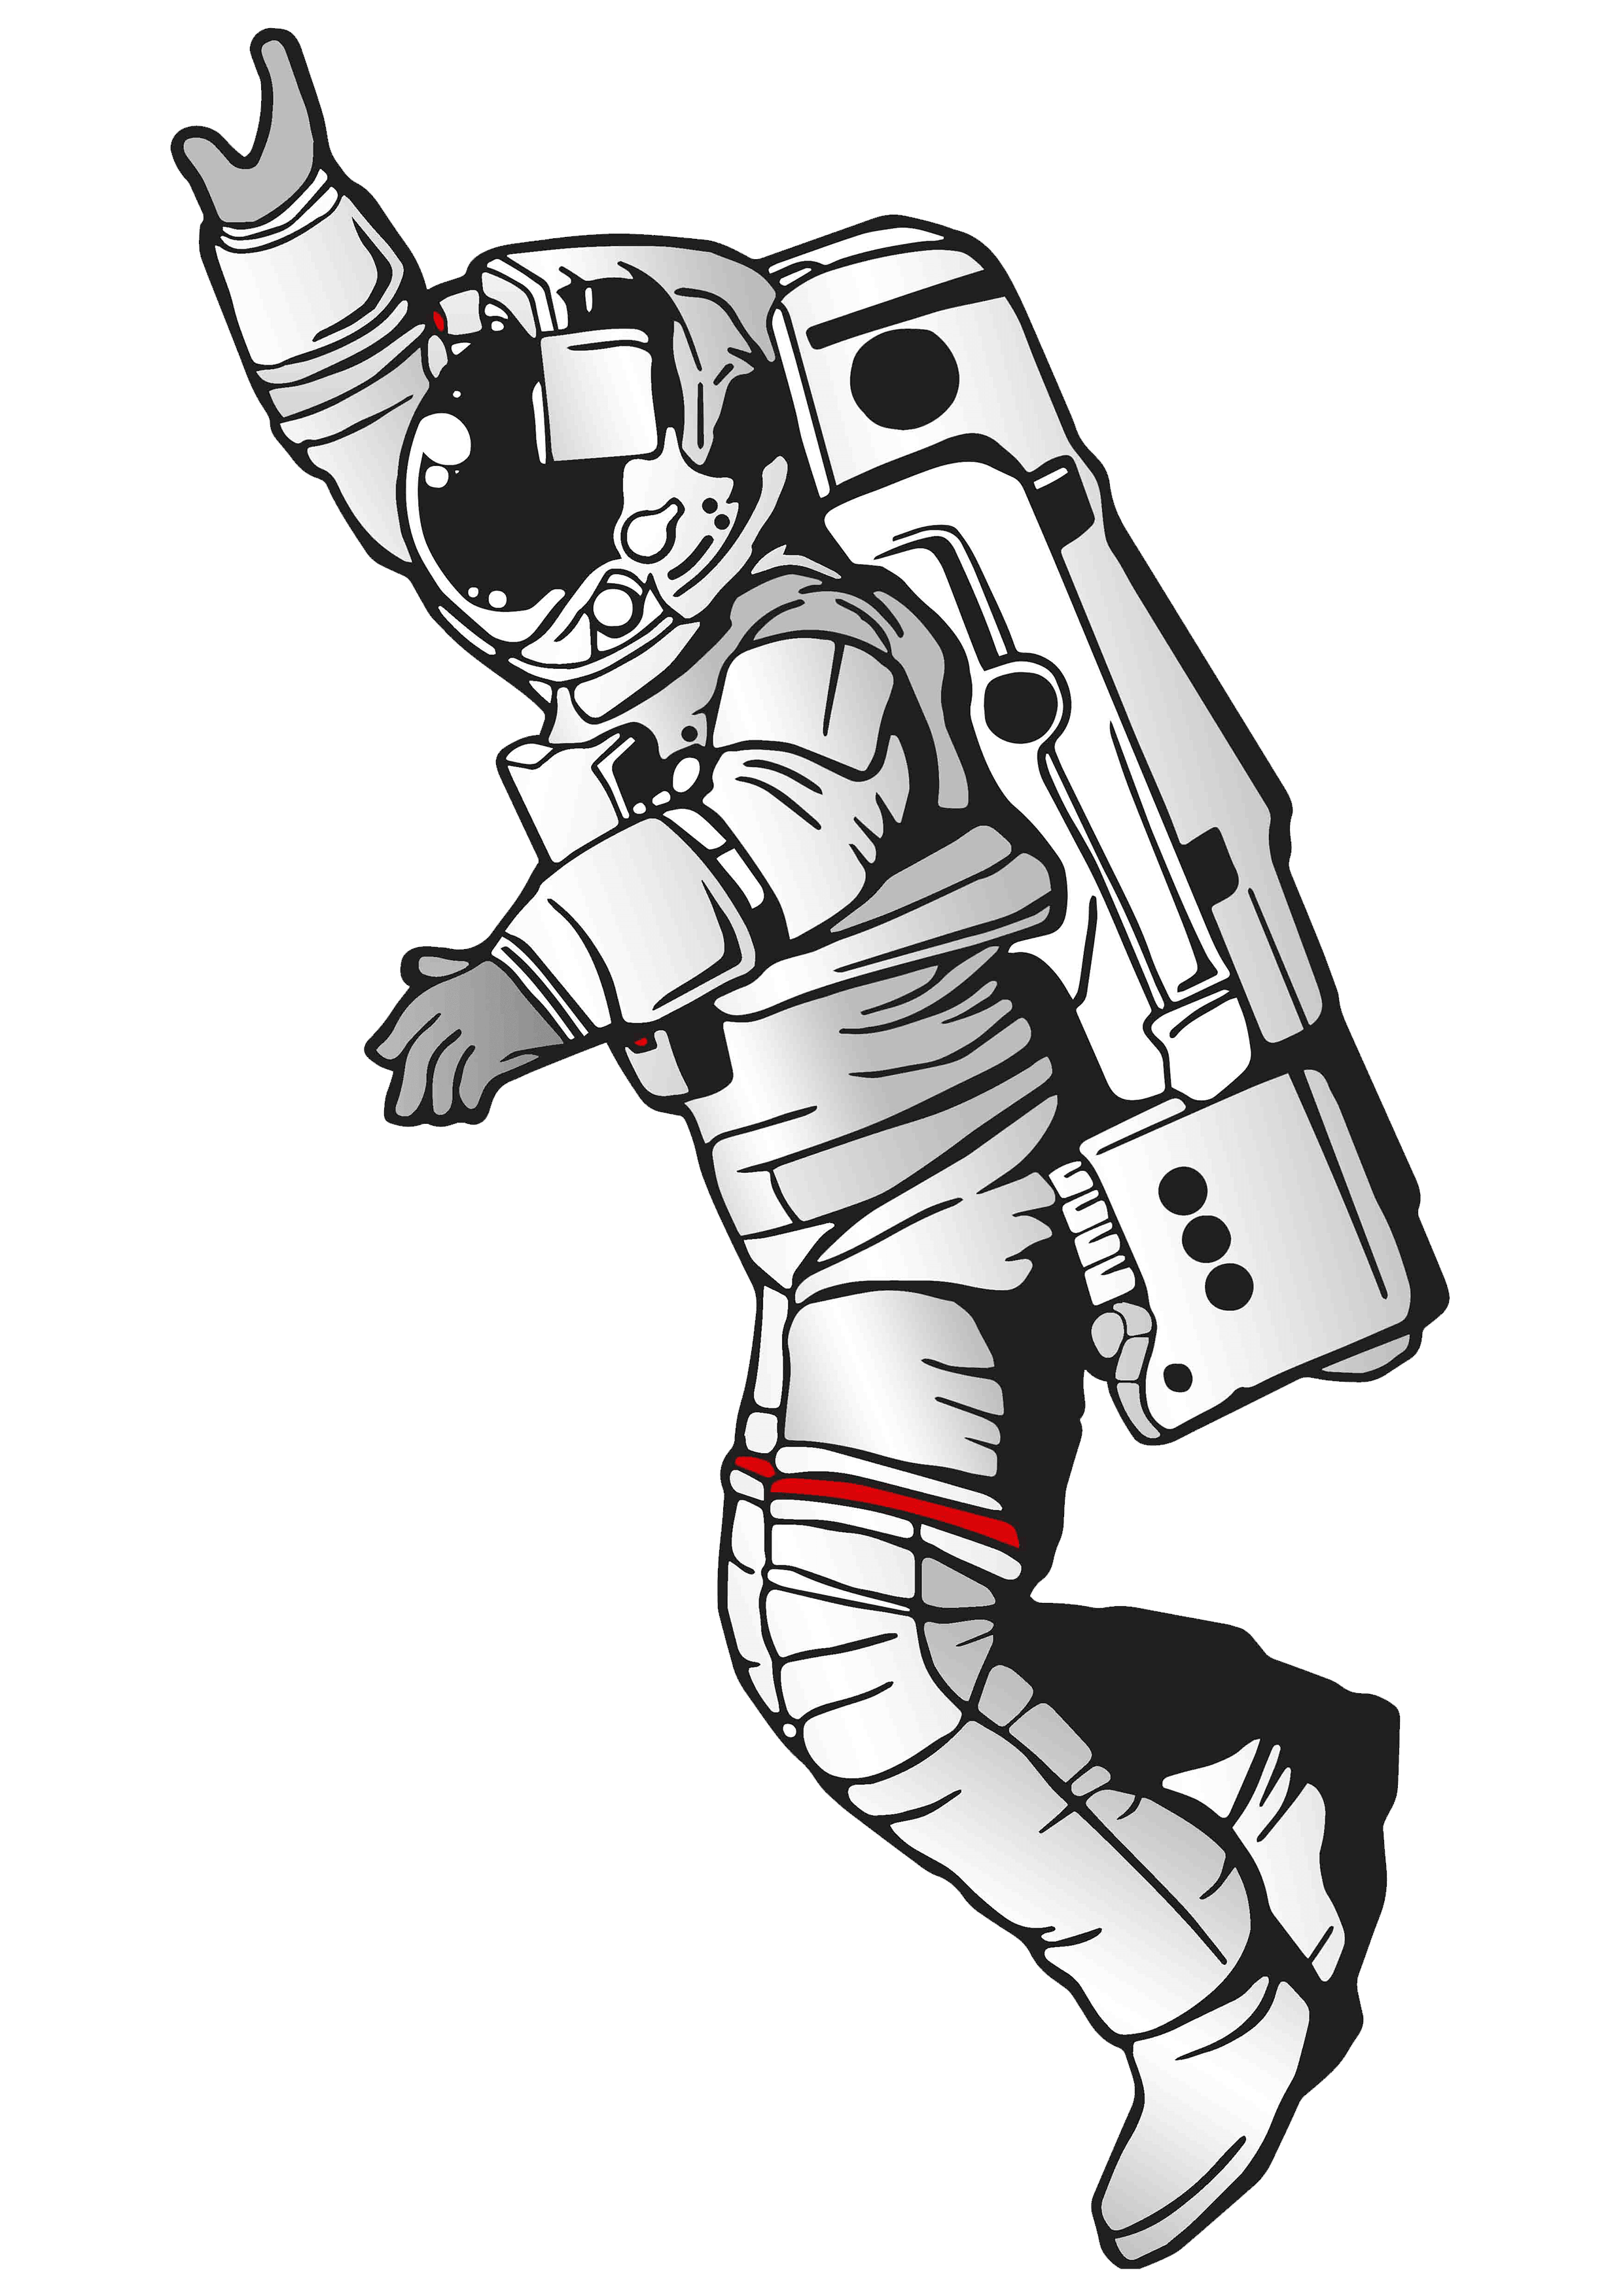 Space man png. Spaceman hd transparent images